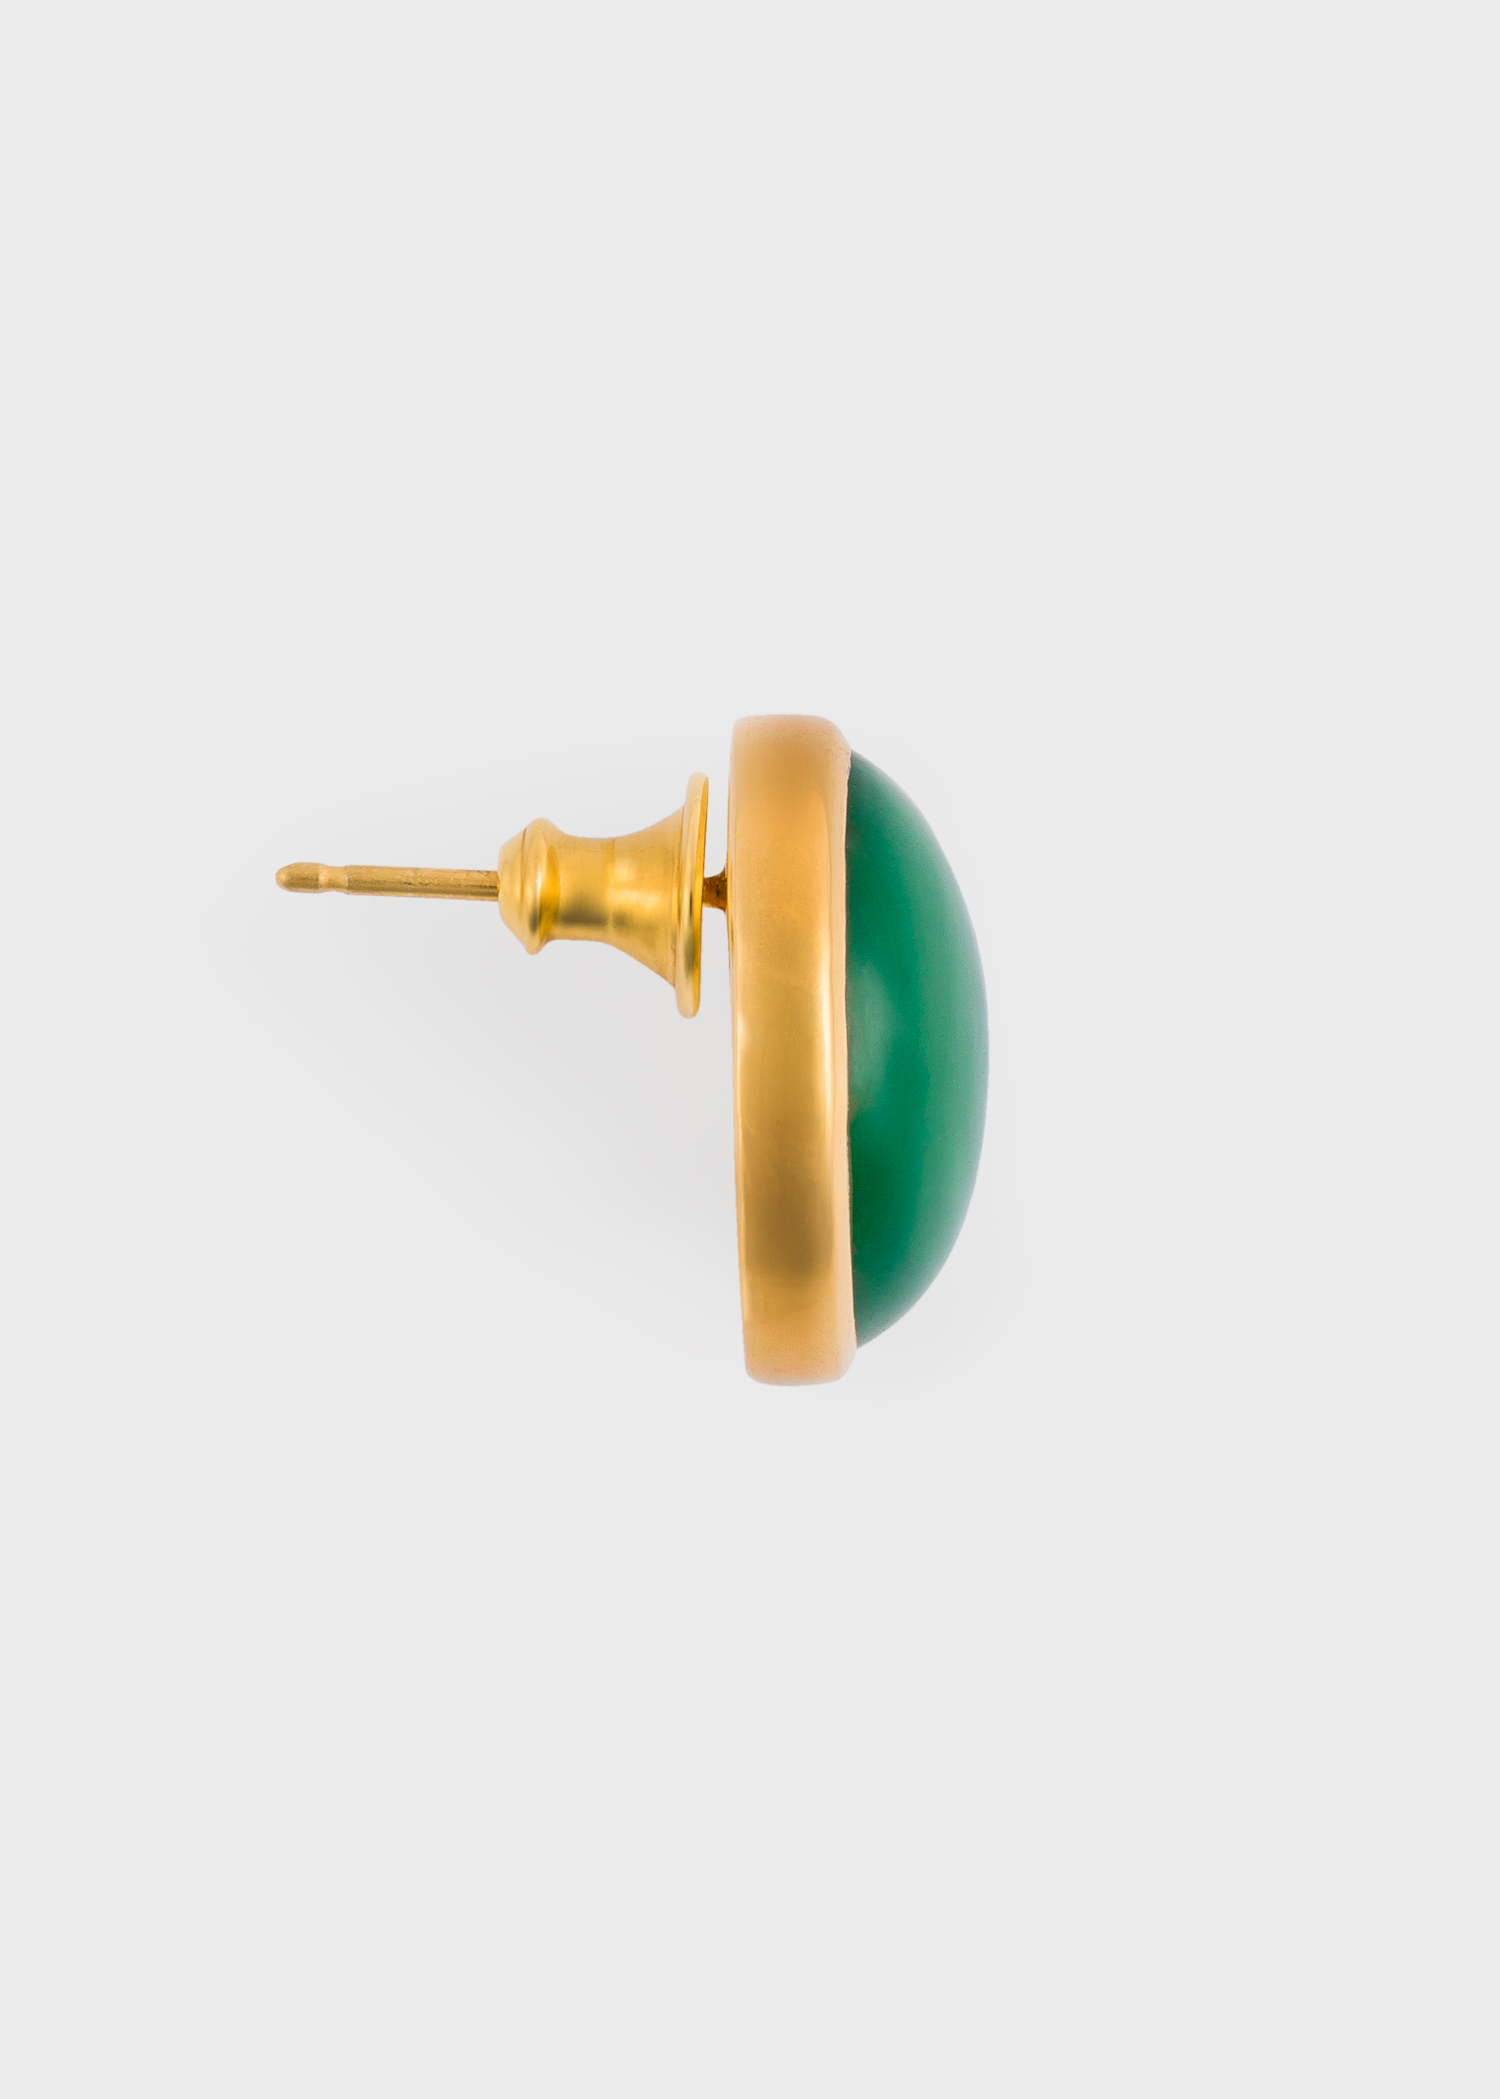 Paul Smith X Rachel Entwistle Gold Stud Earrings With Green Onyx Stone